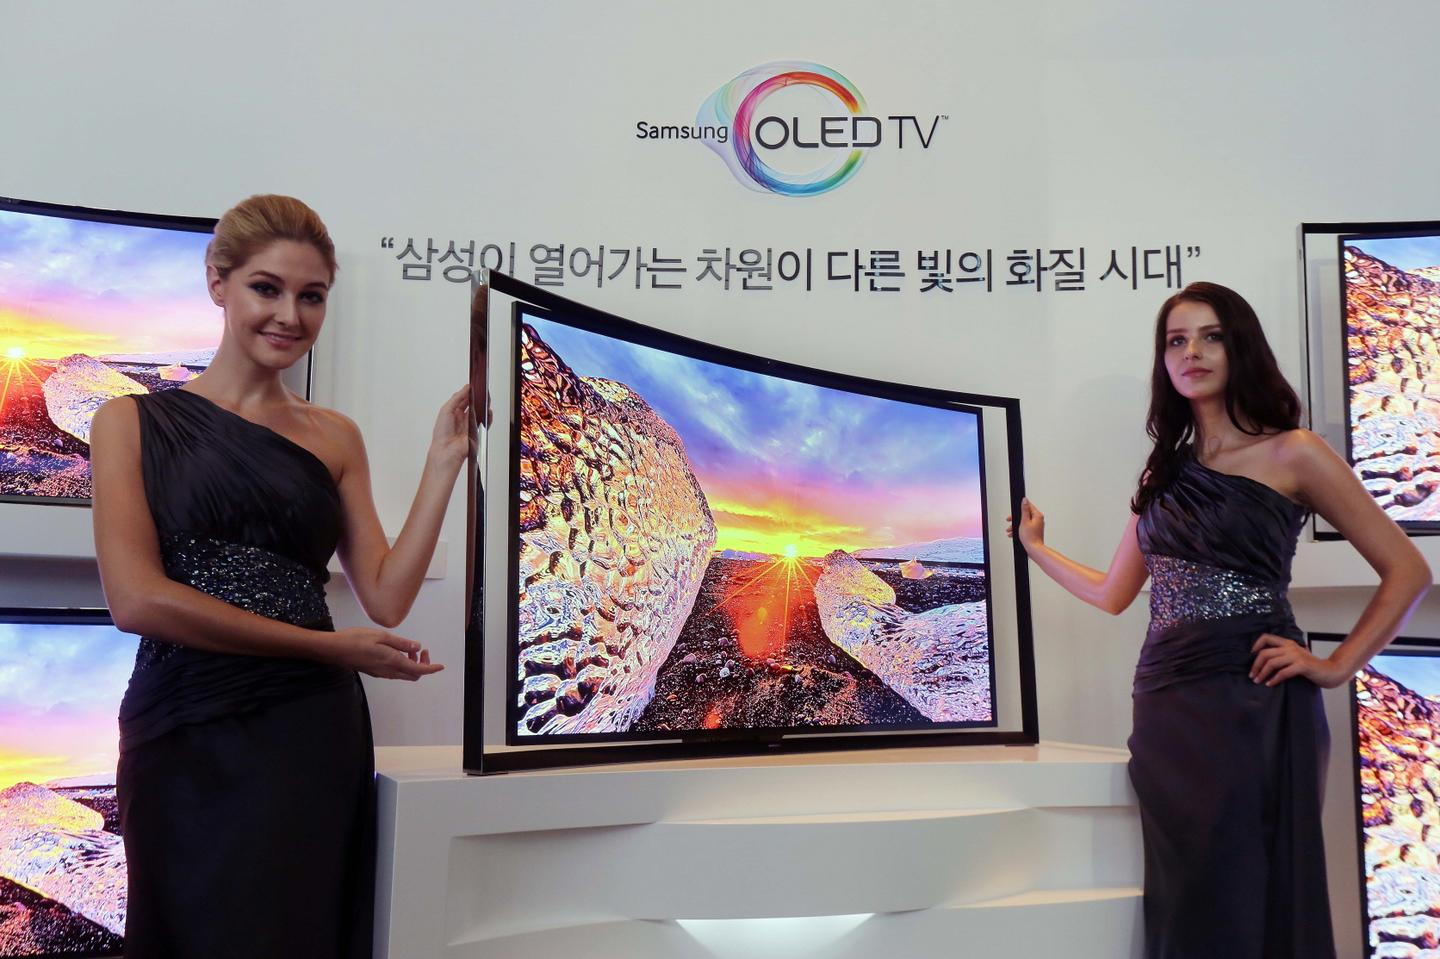 Samsung says that by keeping the distance between viewer and TV the same from almost any angle or vantage point, users benefit from a true-to-life, flawless watching experience